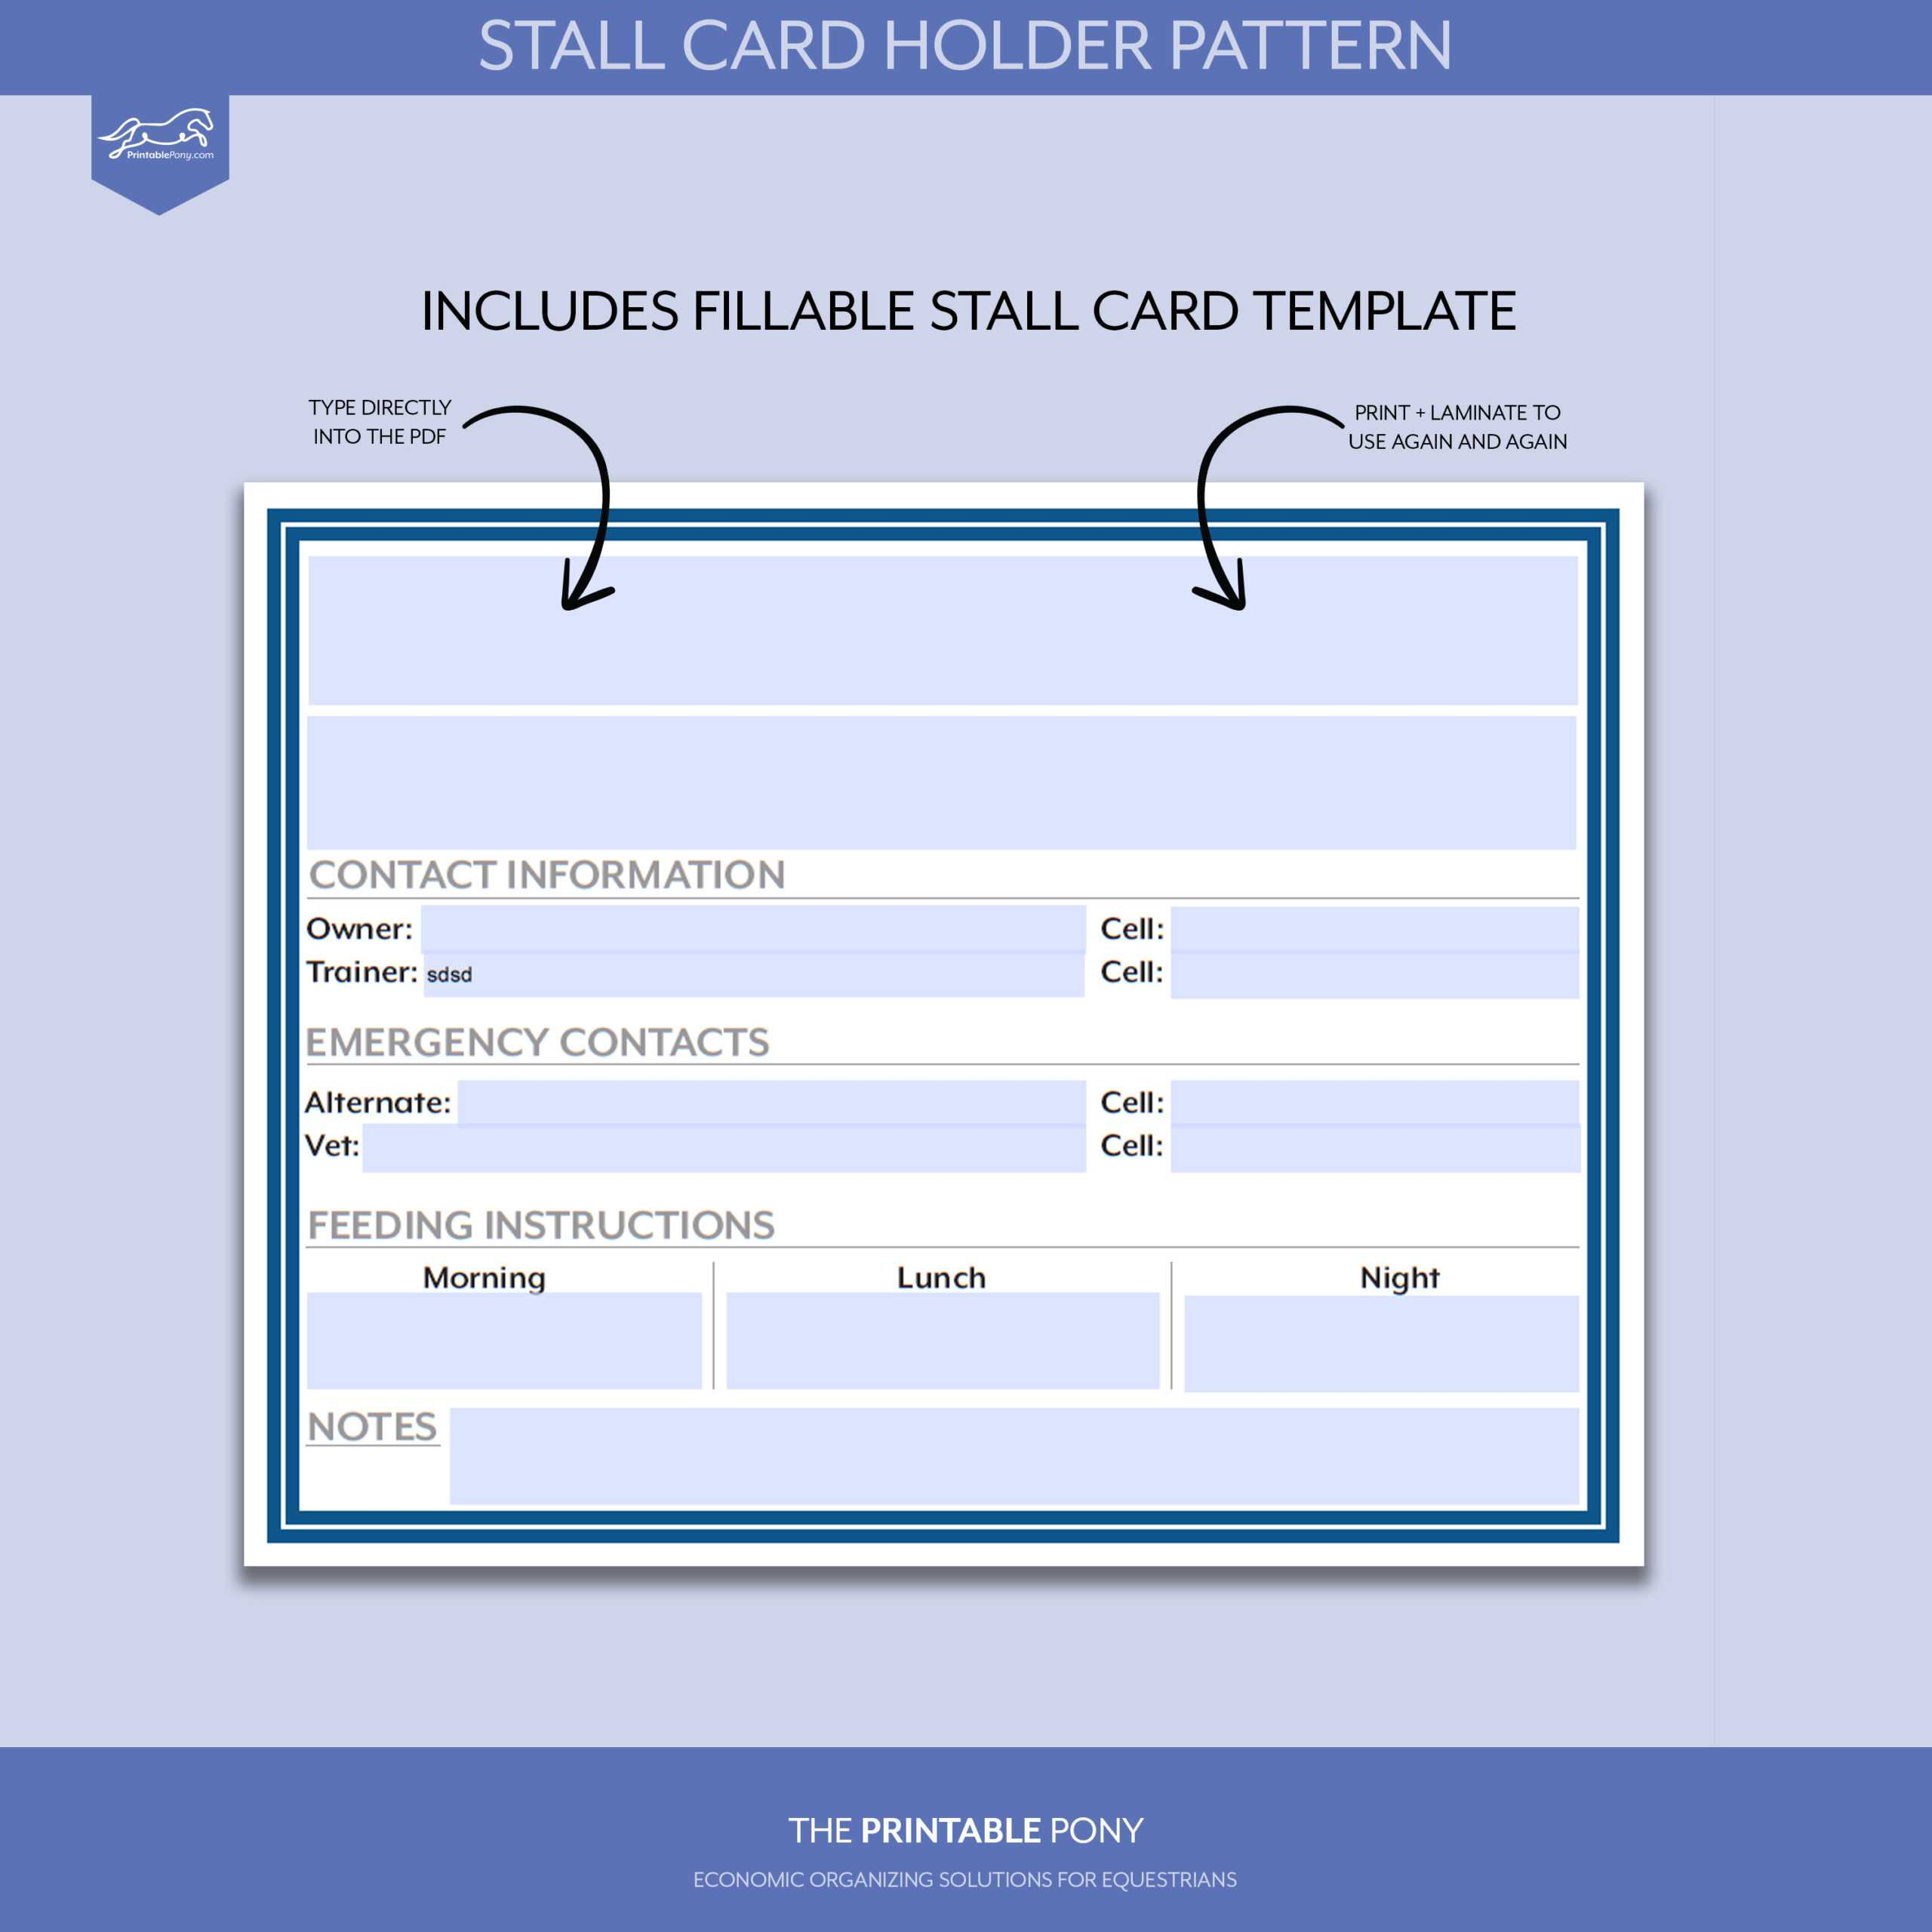 Stall Card Holder Pattern + Printable Stall Card Pertaining To Horse Stall Card Template